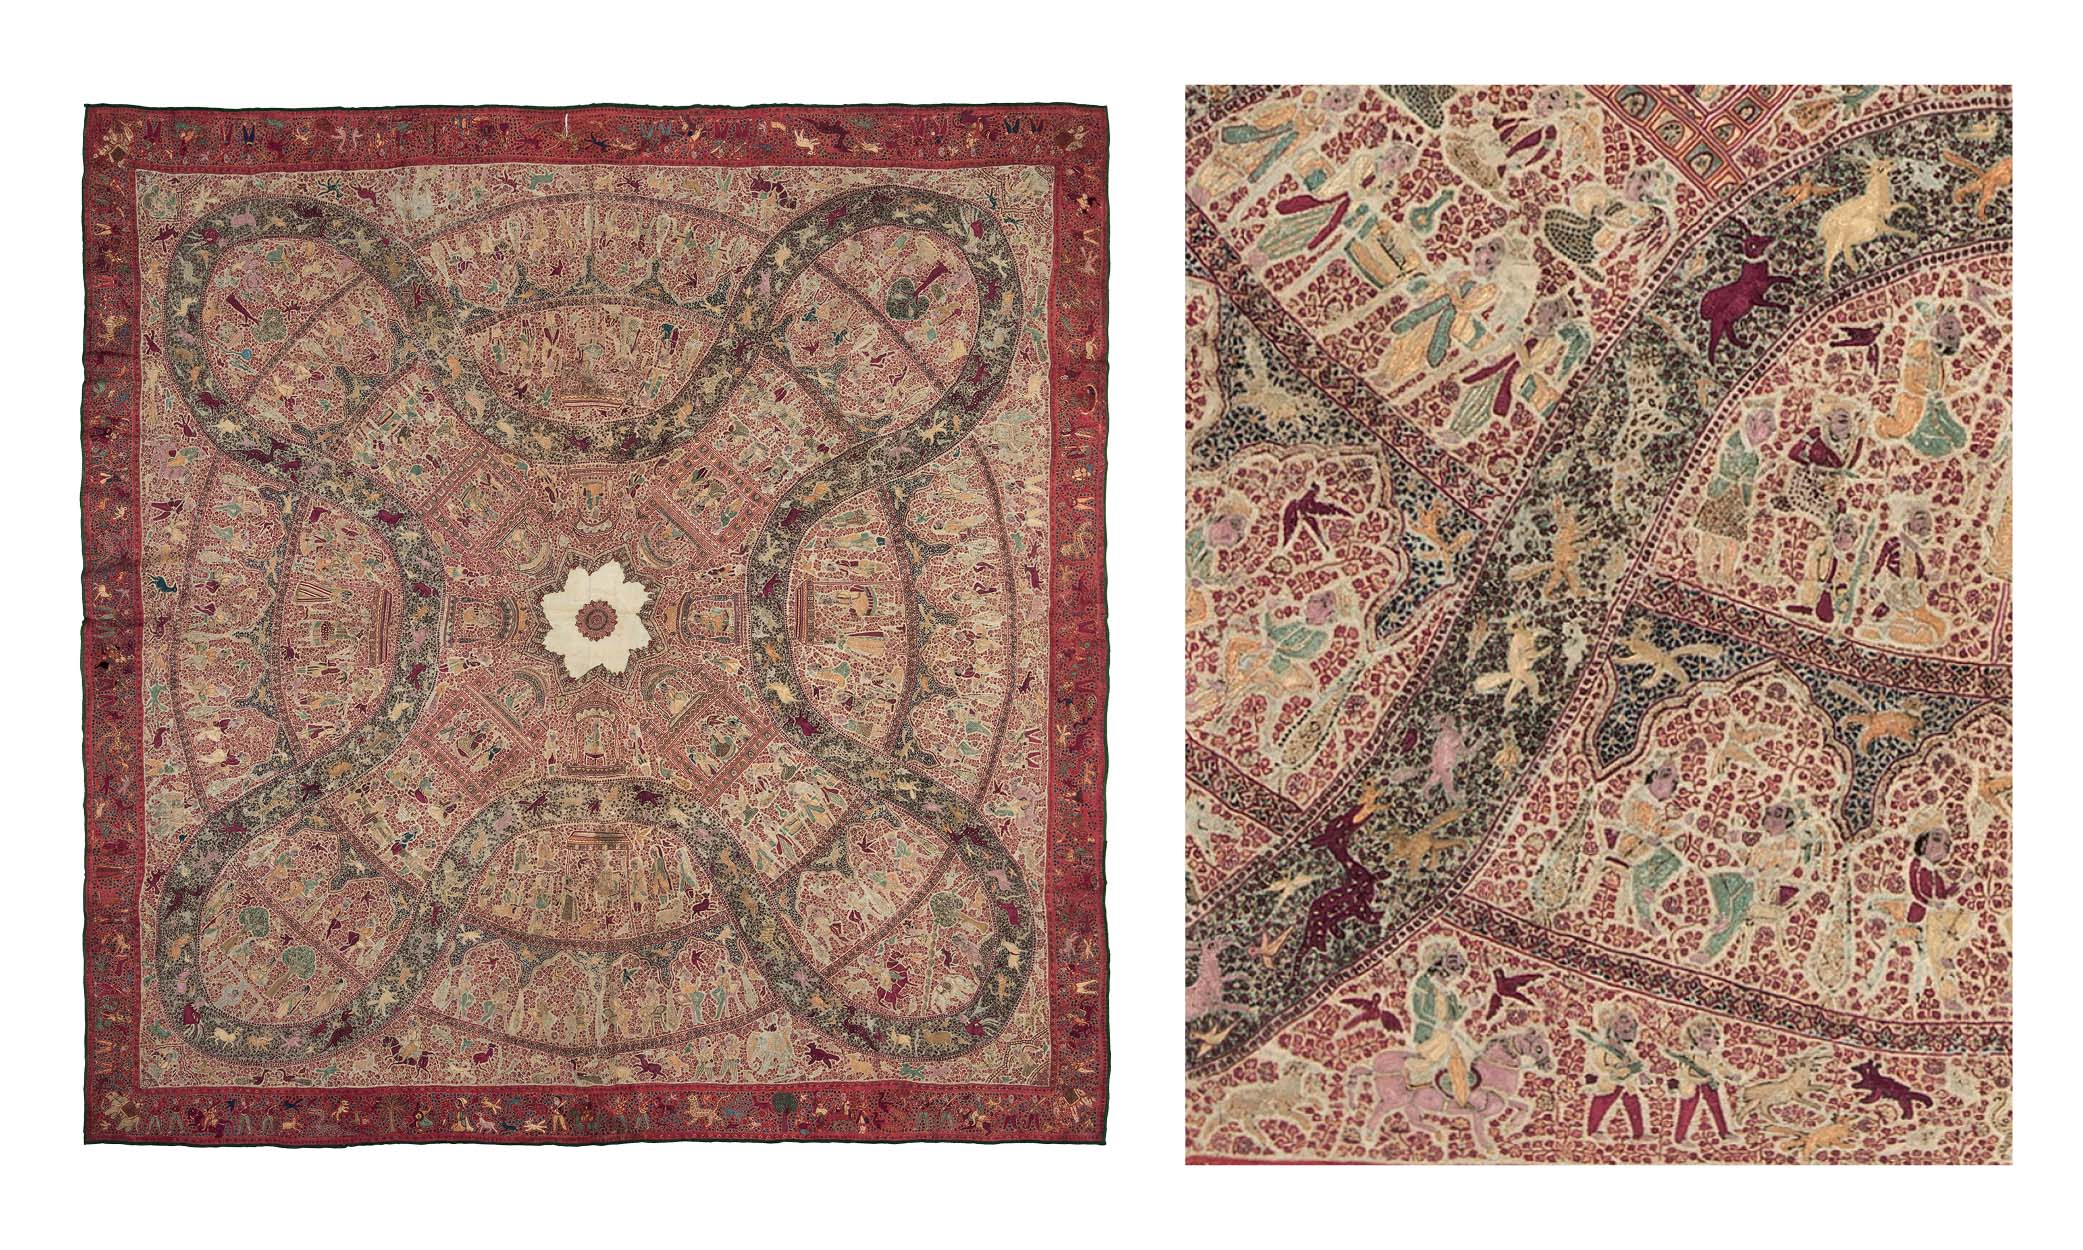 Kashmir embroidered square shawl, third quarter 19th century. Christie's, online sale, 11-18 June 2019, lot 55. Estimate £7,000-10,000, sold for £32,500